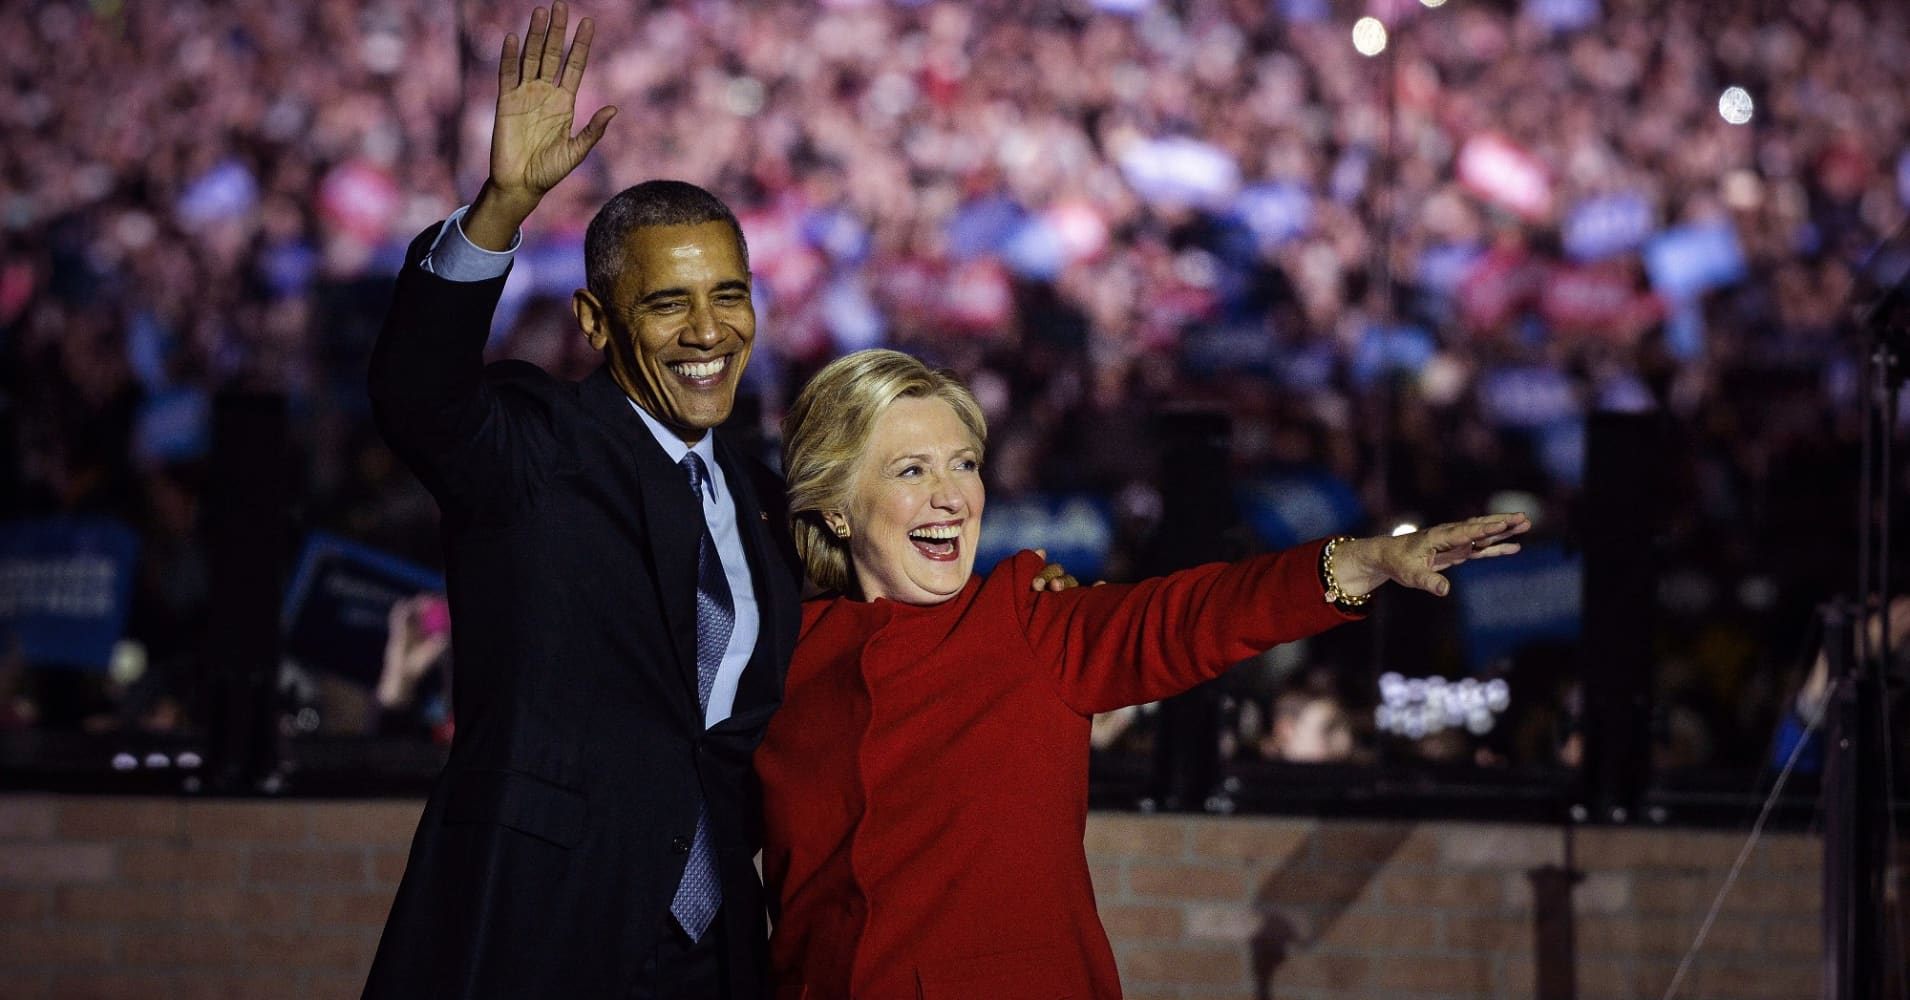 Hillary Clinton, 2016 Democratic presidential nominee, right, and U.S. President Barack Obama wave to the crowd during a campaign event in Philadelphia, Pennsylvania, U.S., on Monday, Nov. 7, 2016.